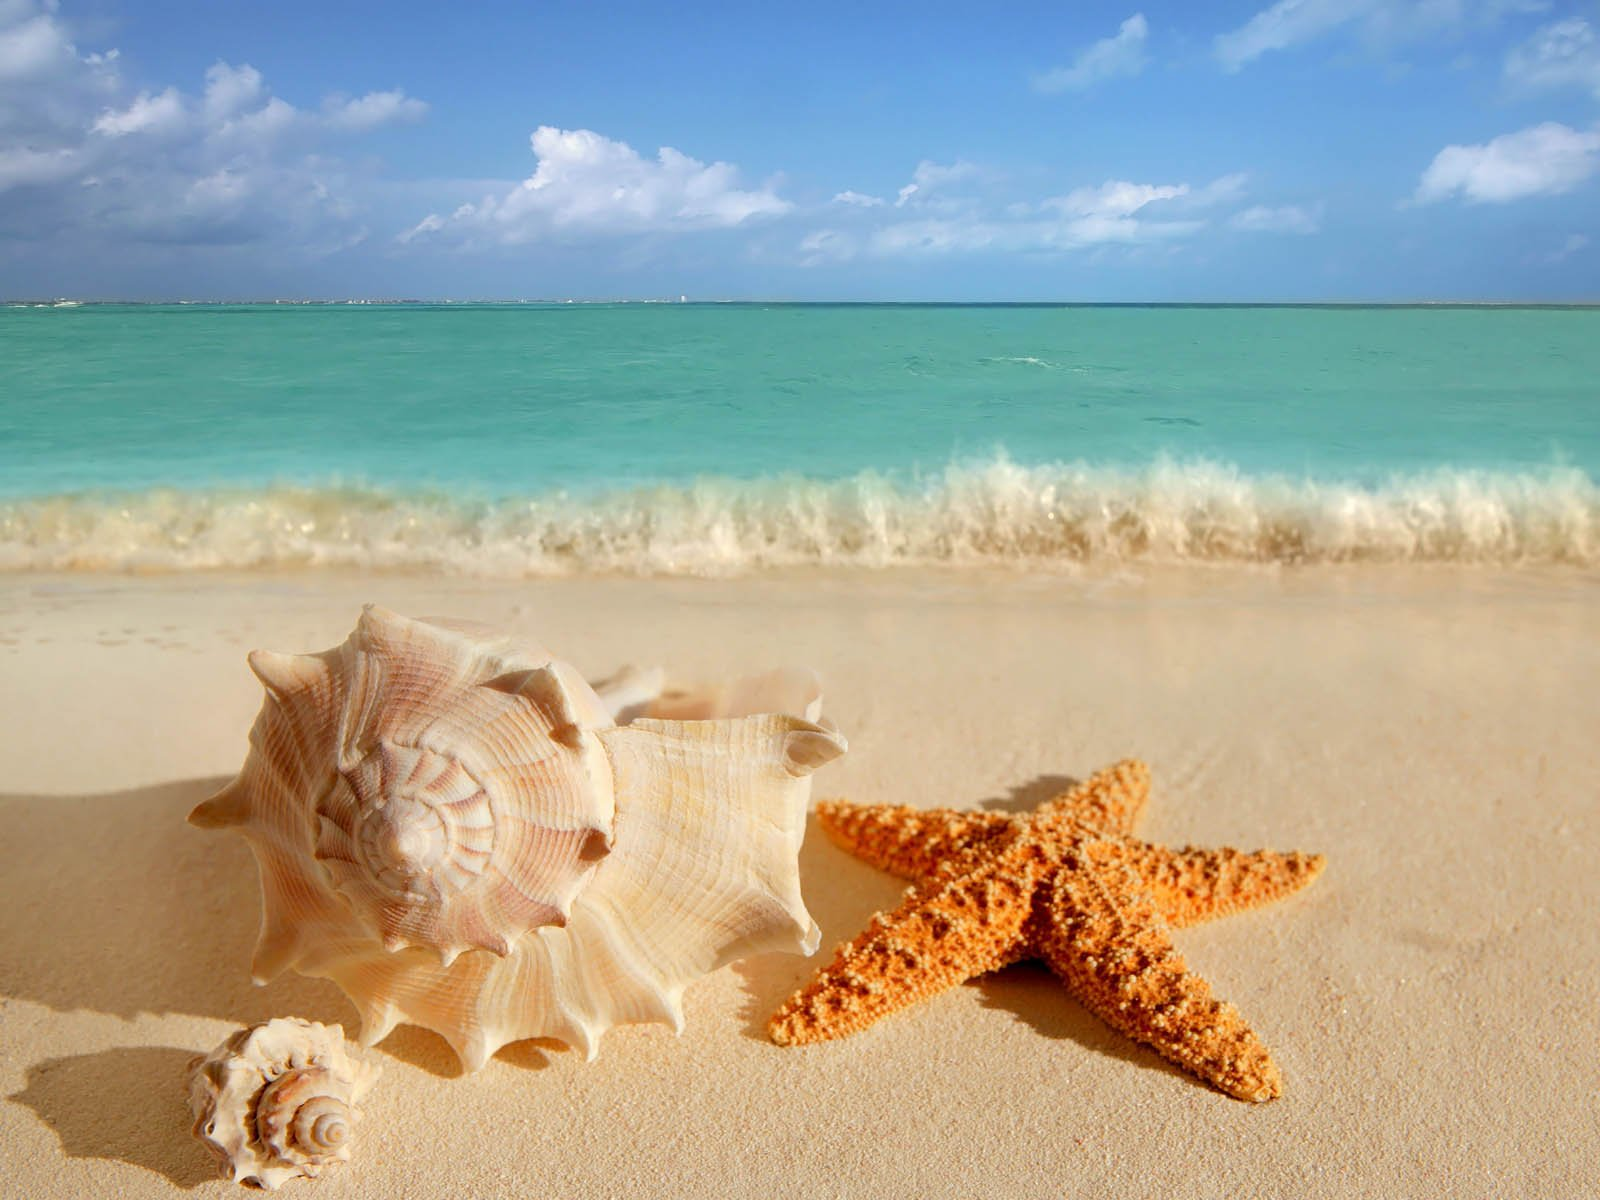 Some facts about starfish